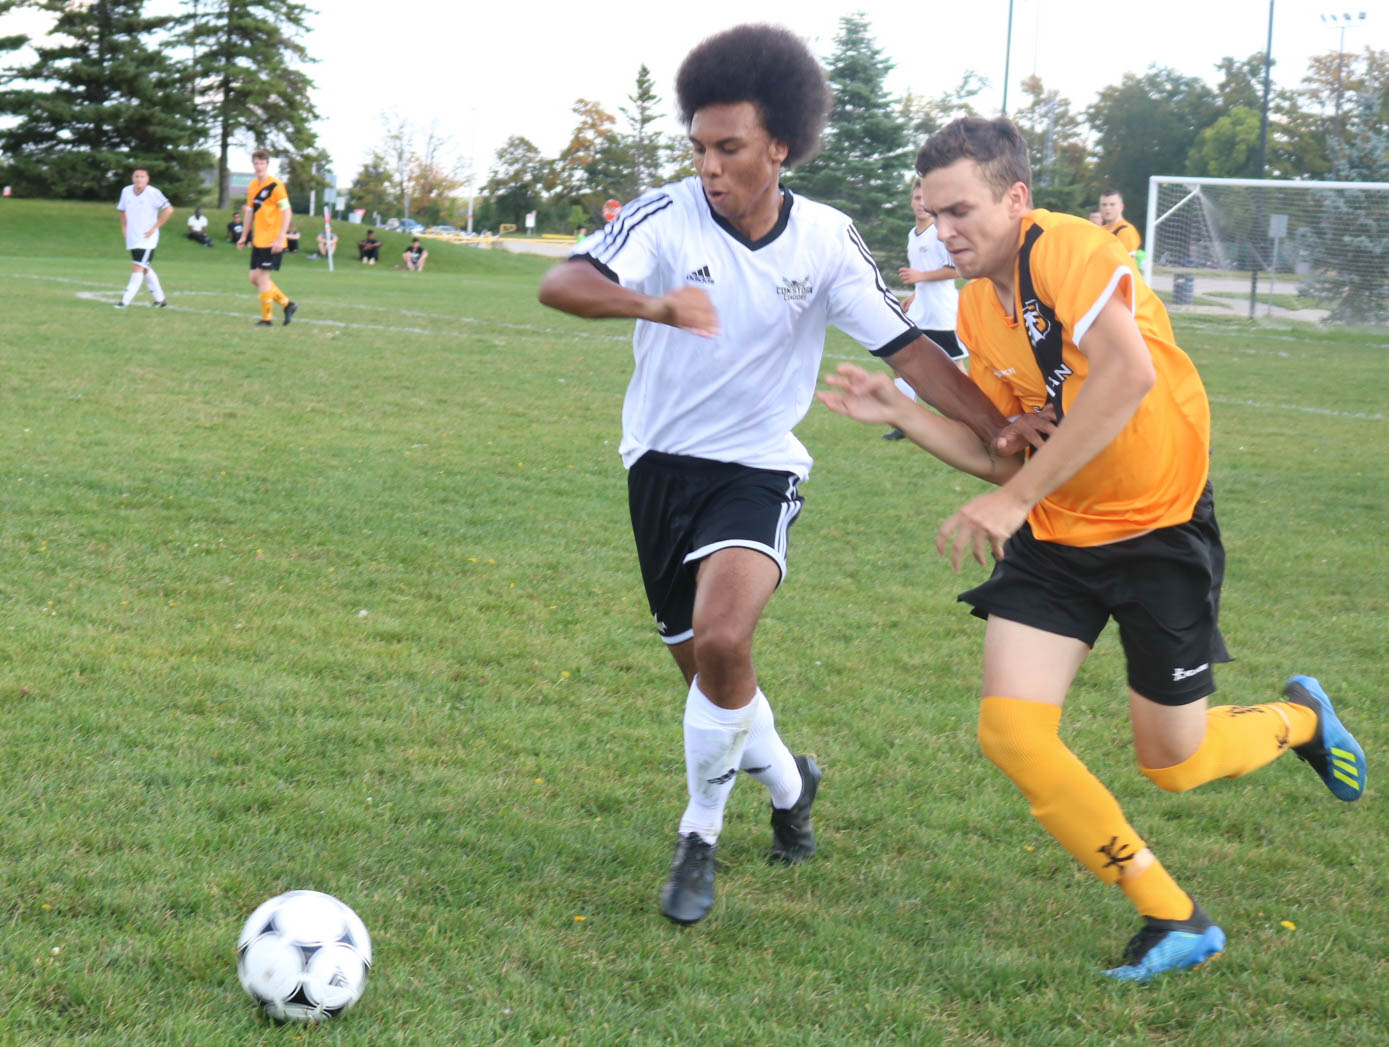 """By Saifullah Muhammad, Spoke News Conestoga College's soccer Condors are still hopeful to come back despite losing their two previous home games of the season in the Ontario college men's soccer league last week. """"I am still happy and confident to shine despite suffering back-to-back defeats. This was really unfortunate for the last two games,"""" said Reza Ullah after the match against the Cambrian soccer team on Saturday at Condor Field. He also mentioned that..."""